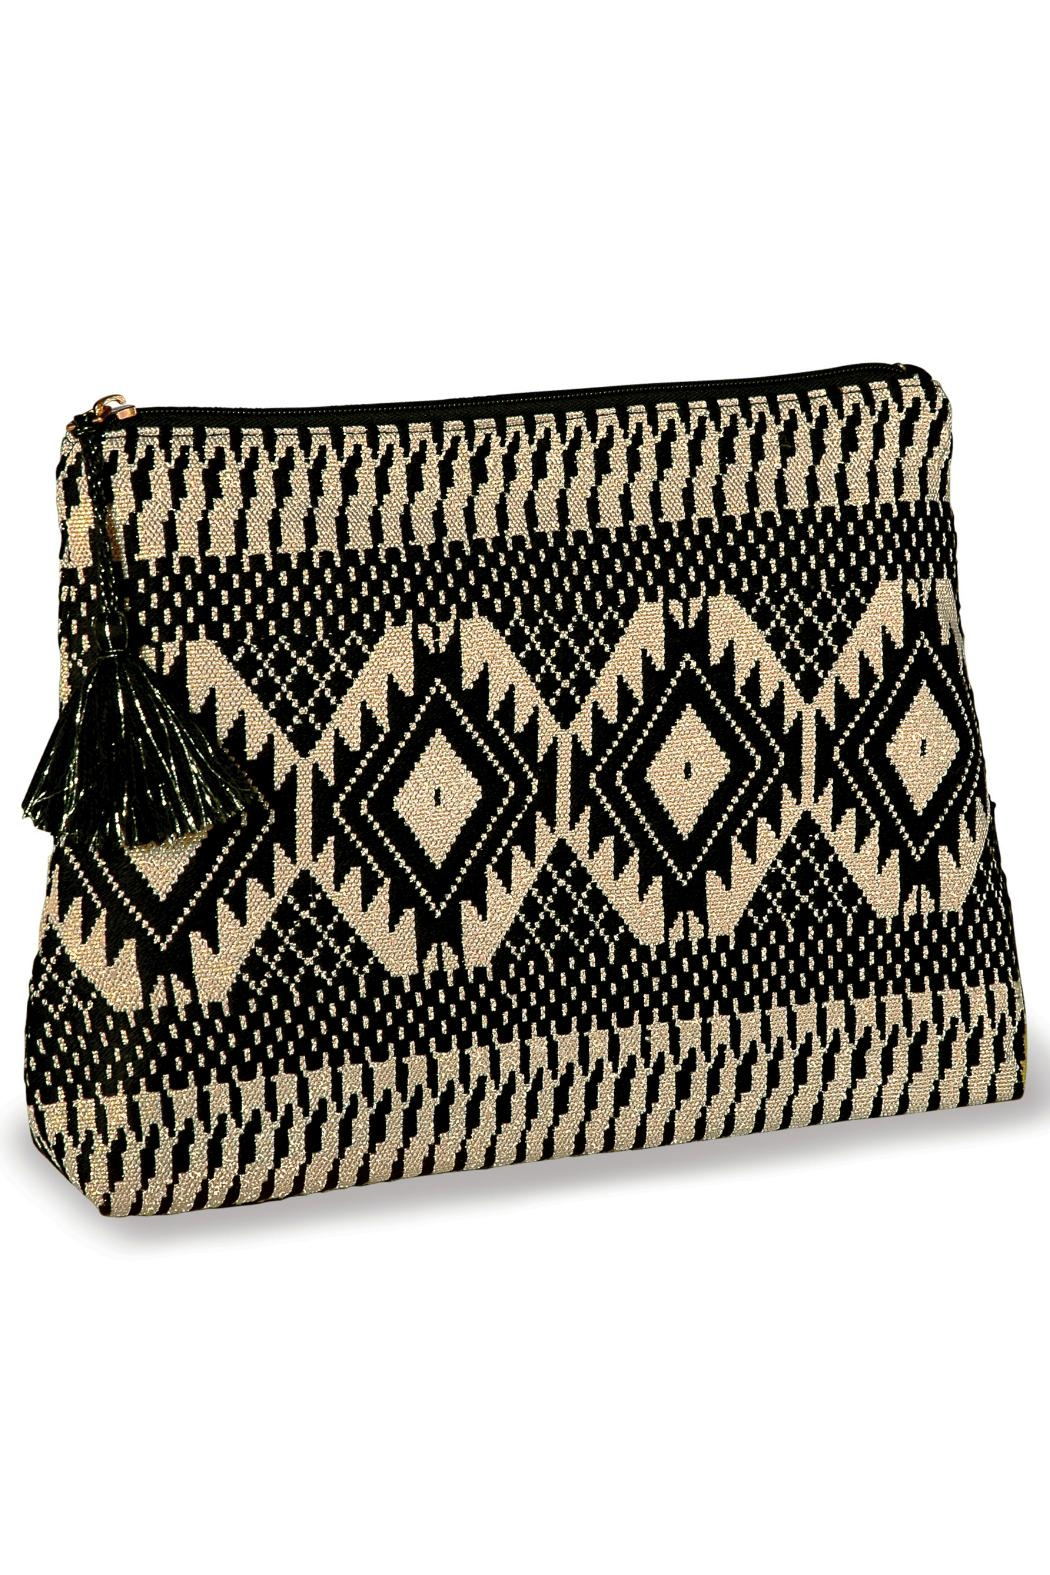 Mud Pie Shimmery Jacquard Clutch - Front Full Image